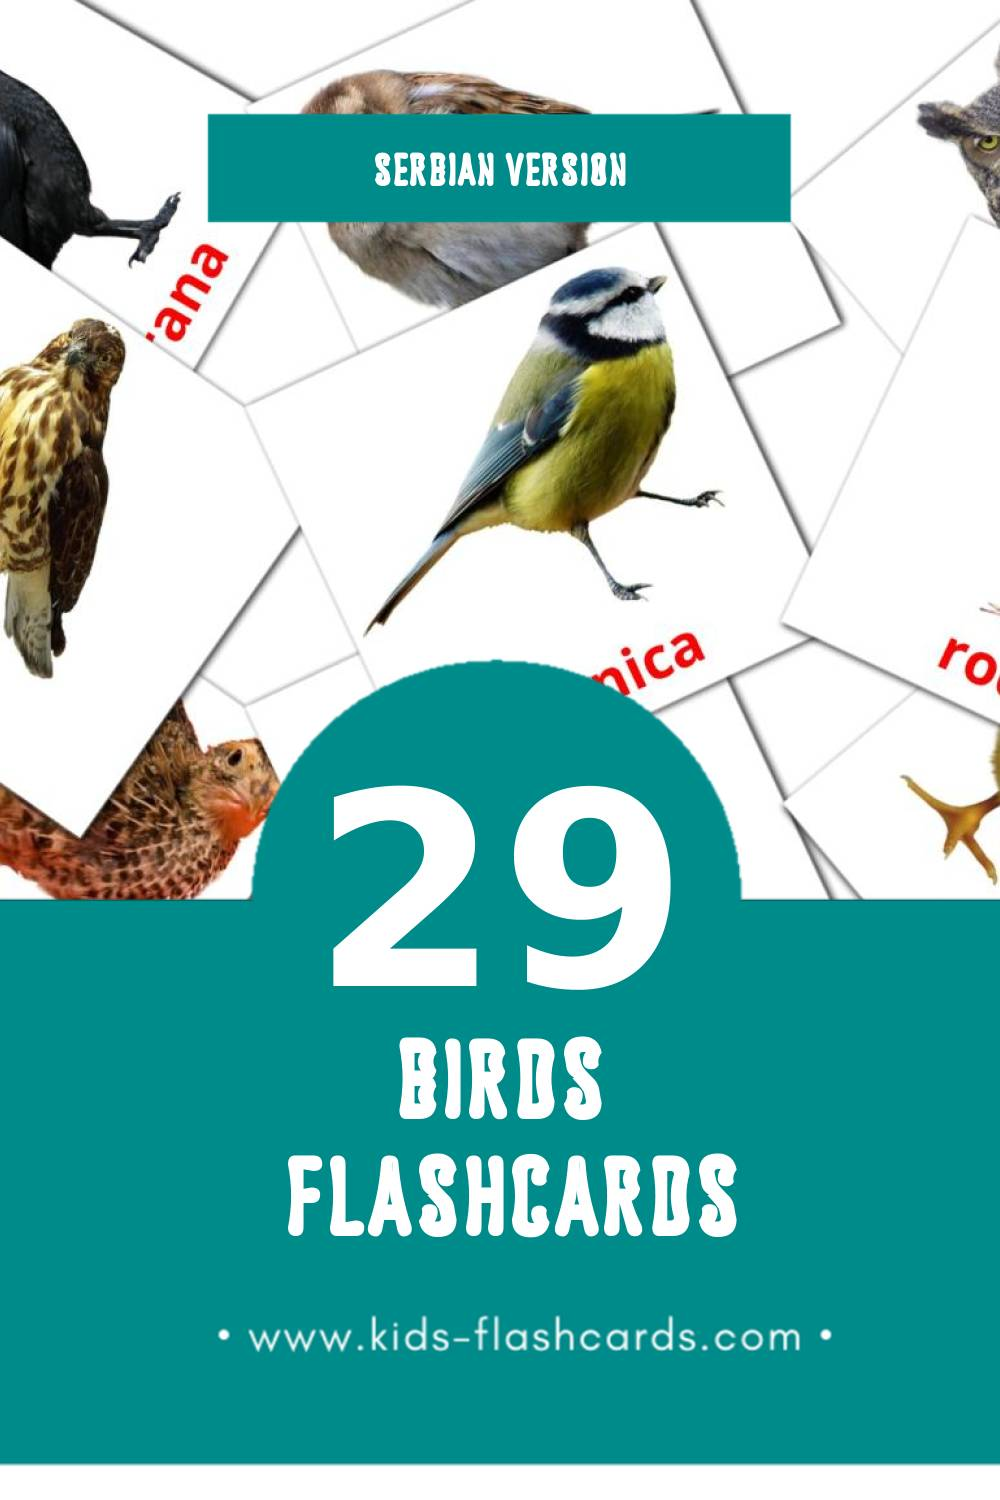 Visual Ptice Flashcards for Toddlers (29 cards in Serbian)